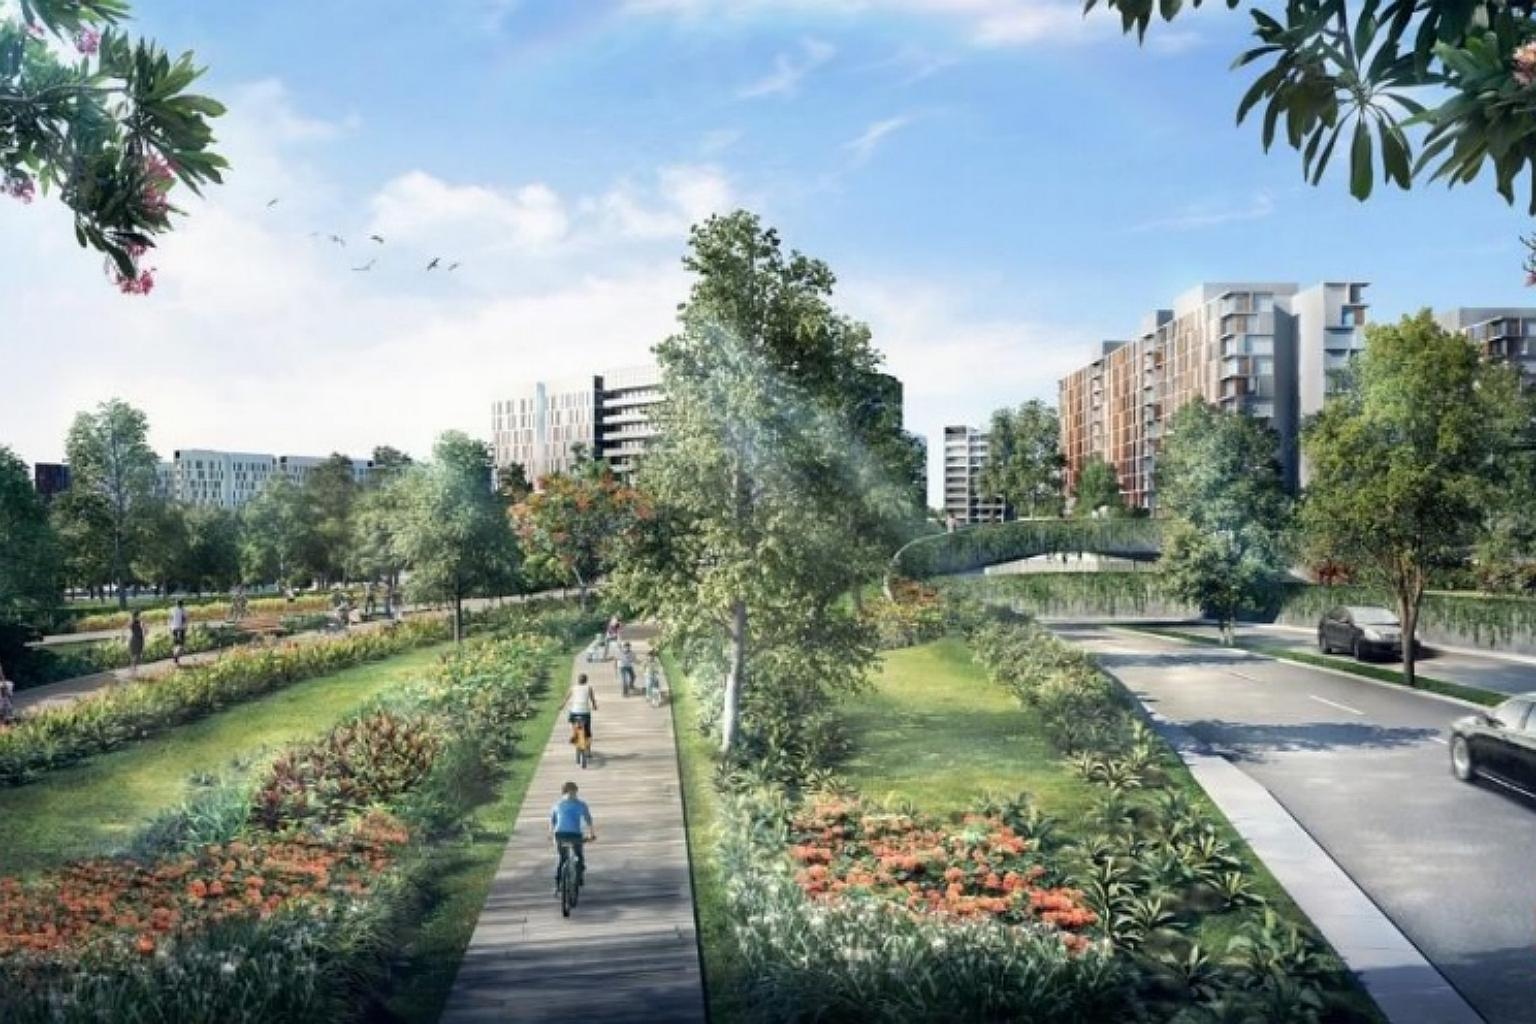 The Bidadari Greenway that runs beside the Woodleigh Condo Location